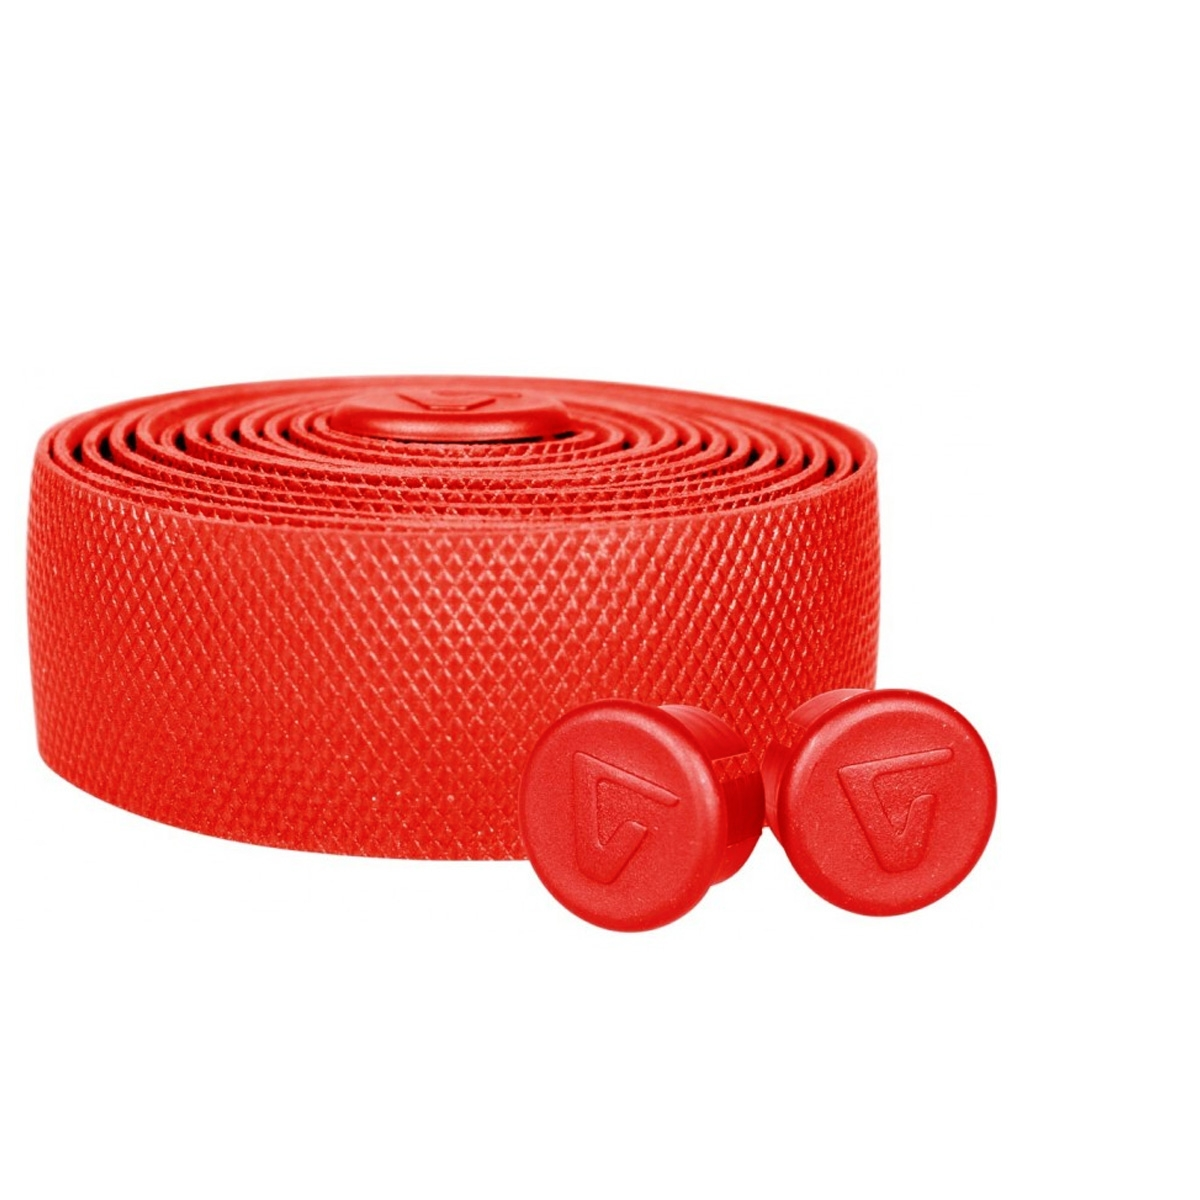 Guidoline VELOX High Grip 3.0 Rouge